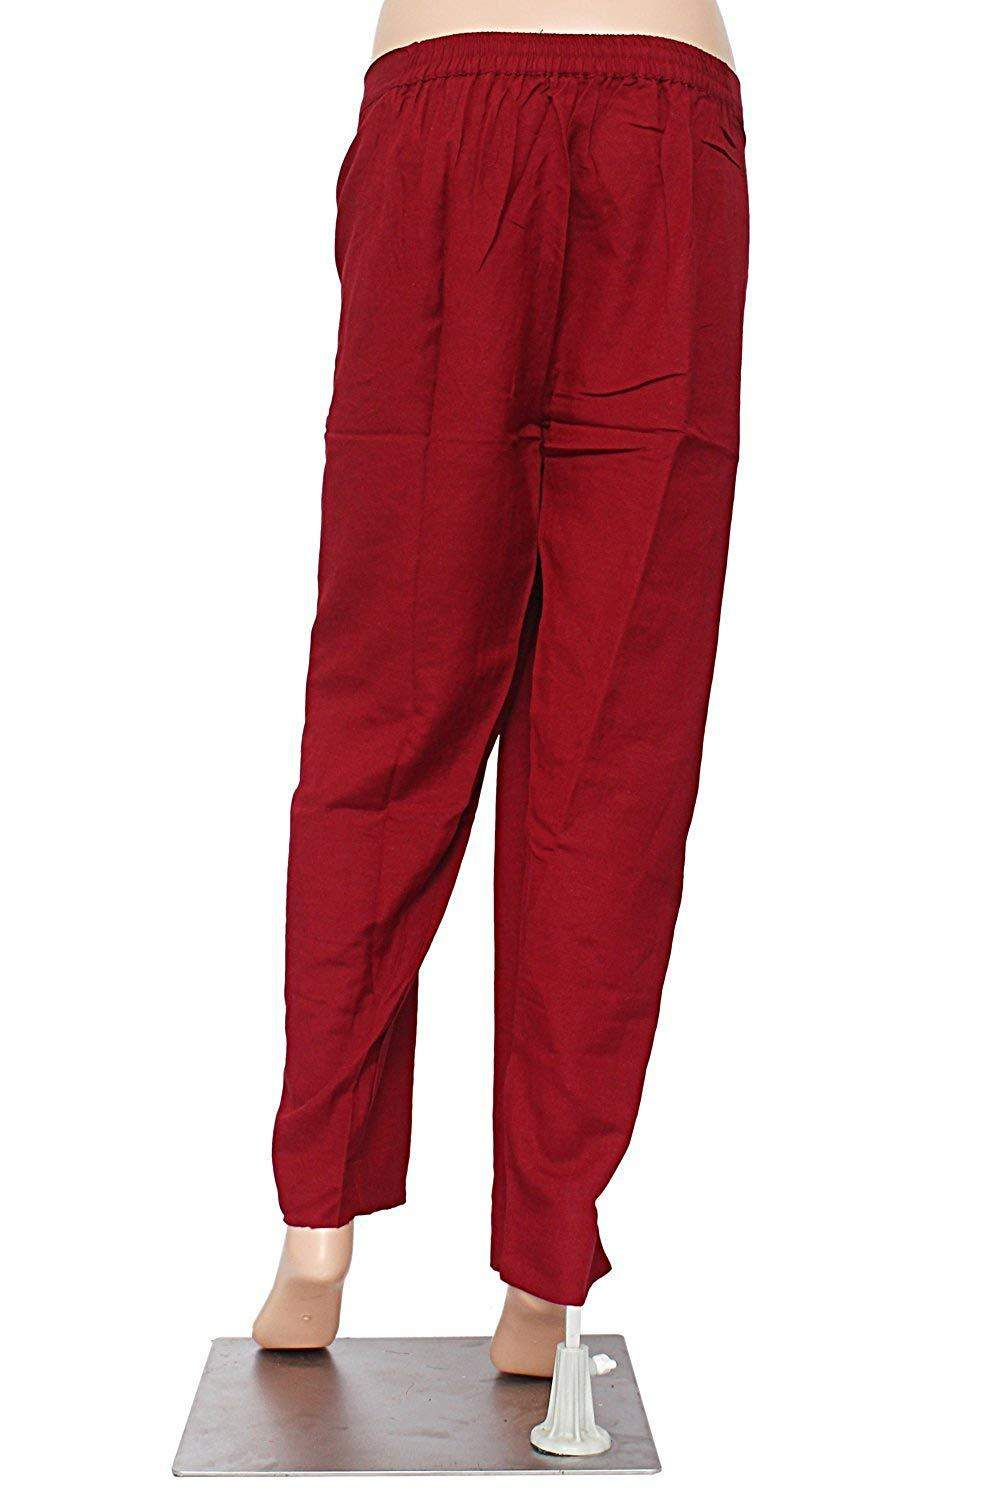 Stylish Cotton Linen Plain Solid Pants Trousers (Maroon) - Bagaholics Gift